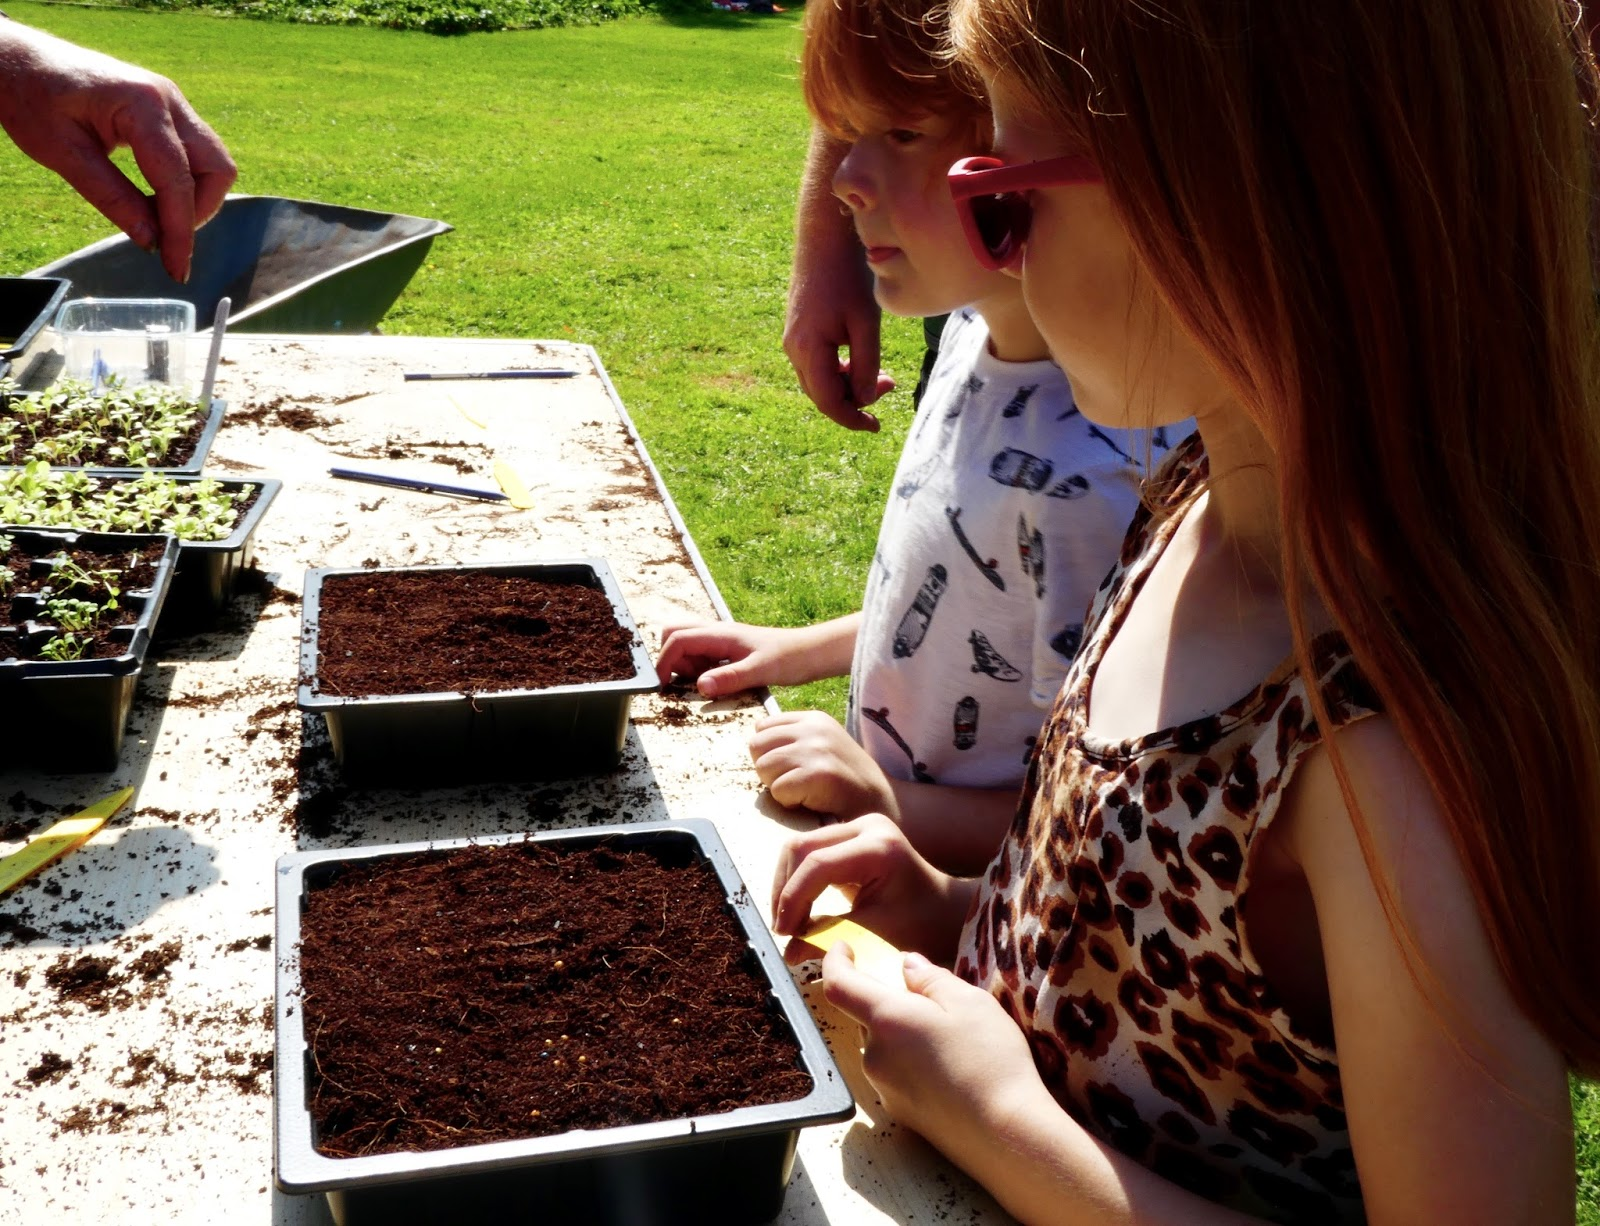 Gibside - A North East National Trust Property that's ideal for Picnics, Adventure Playground fun and beautiful gardens - Walled Garden create your own salad tray activity